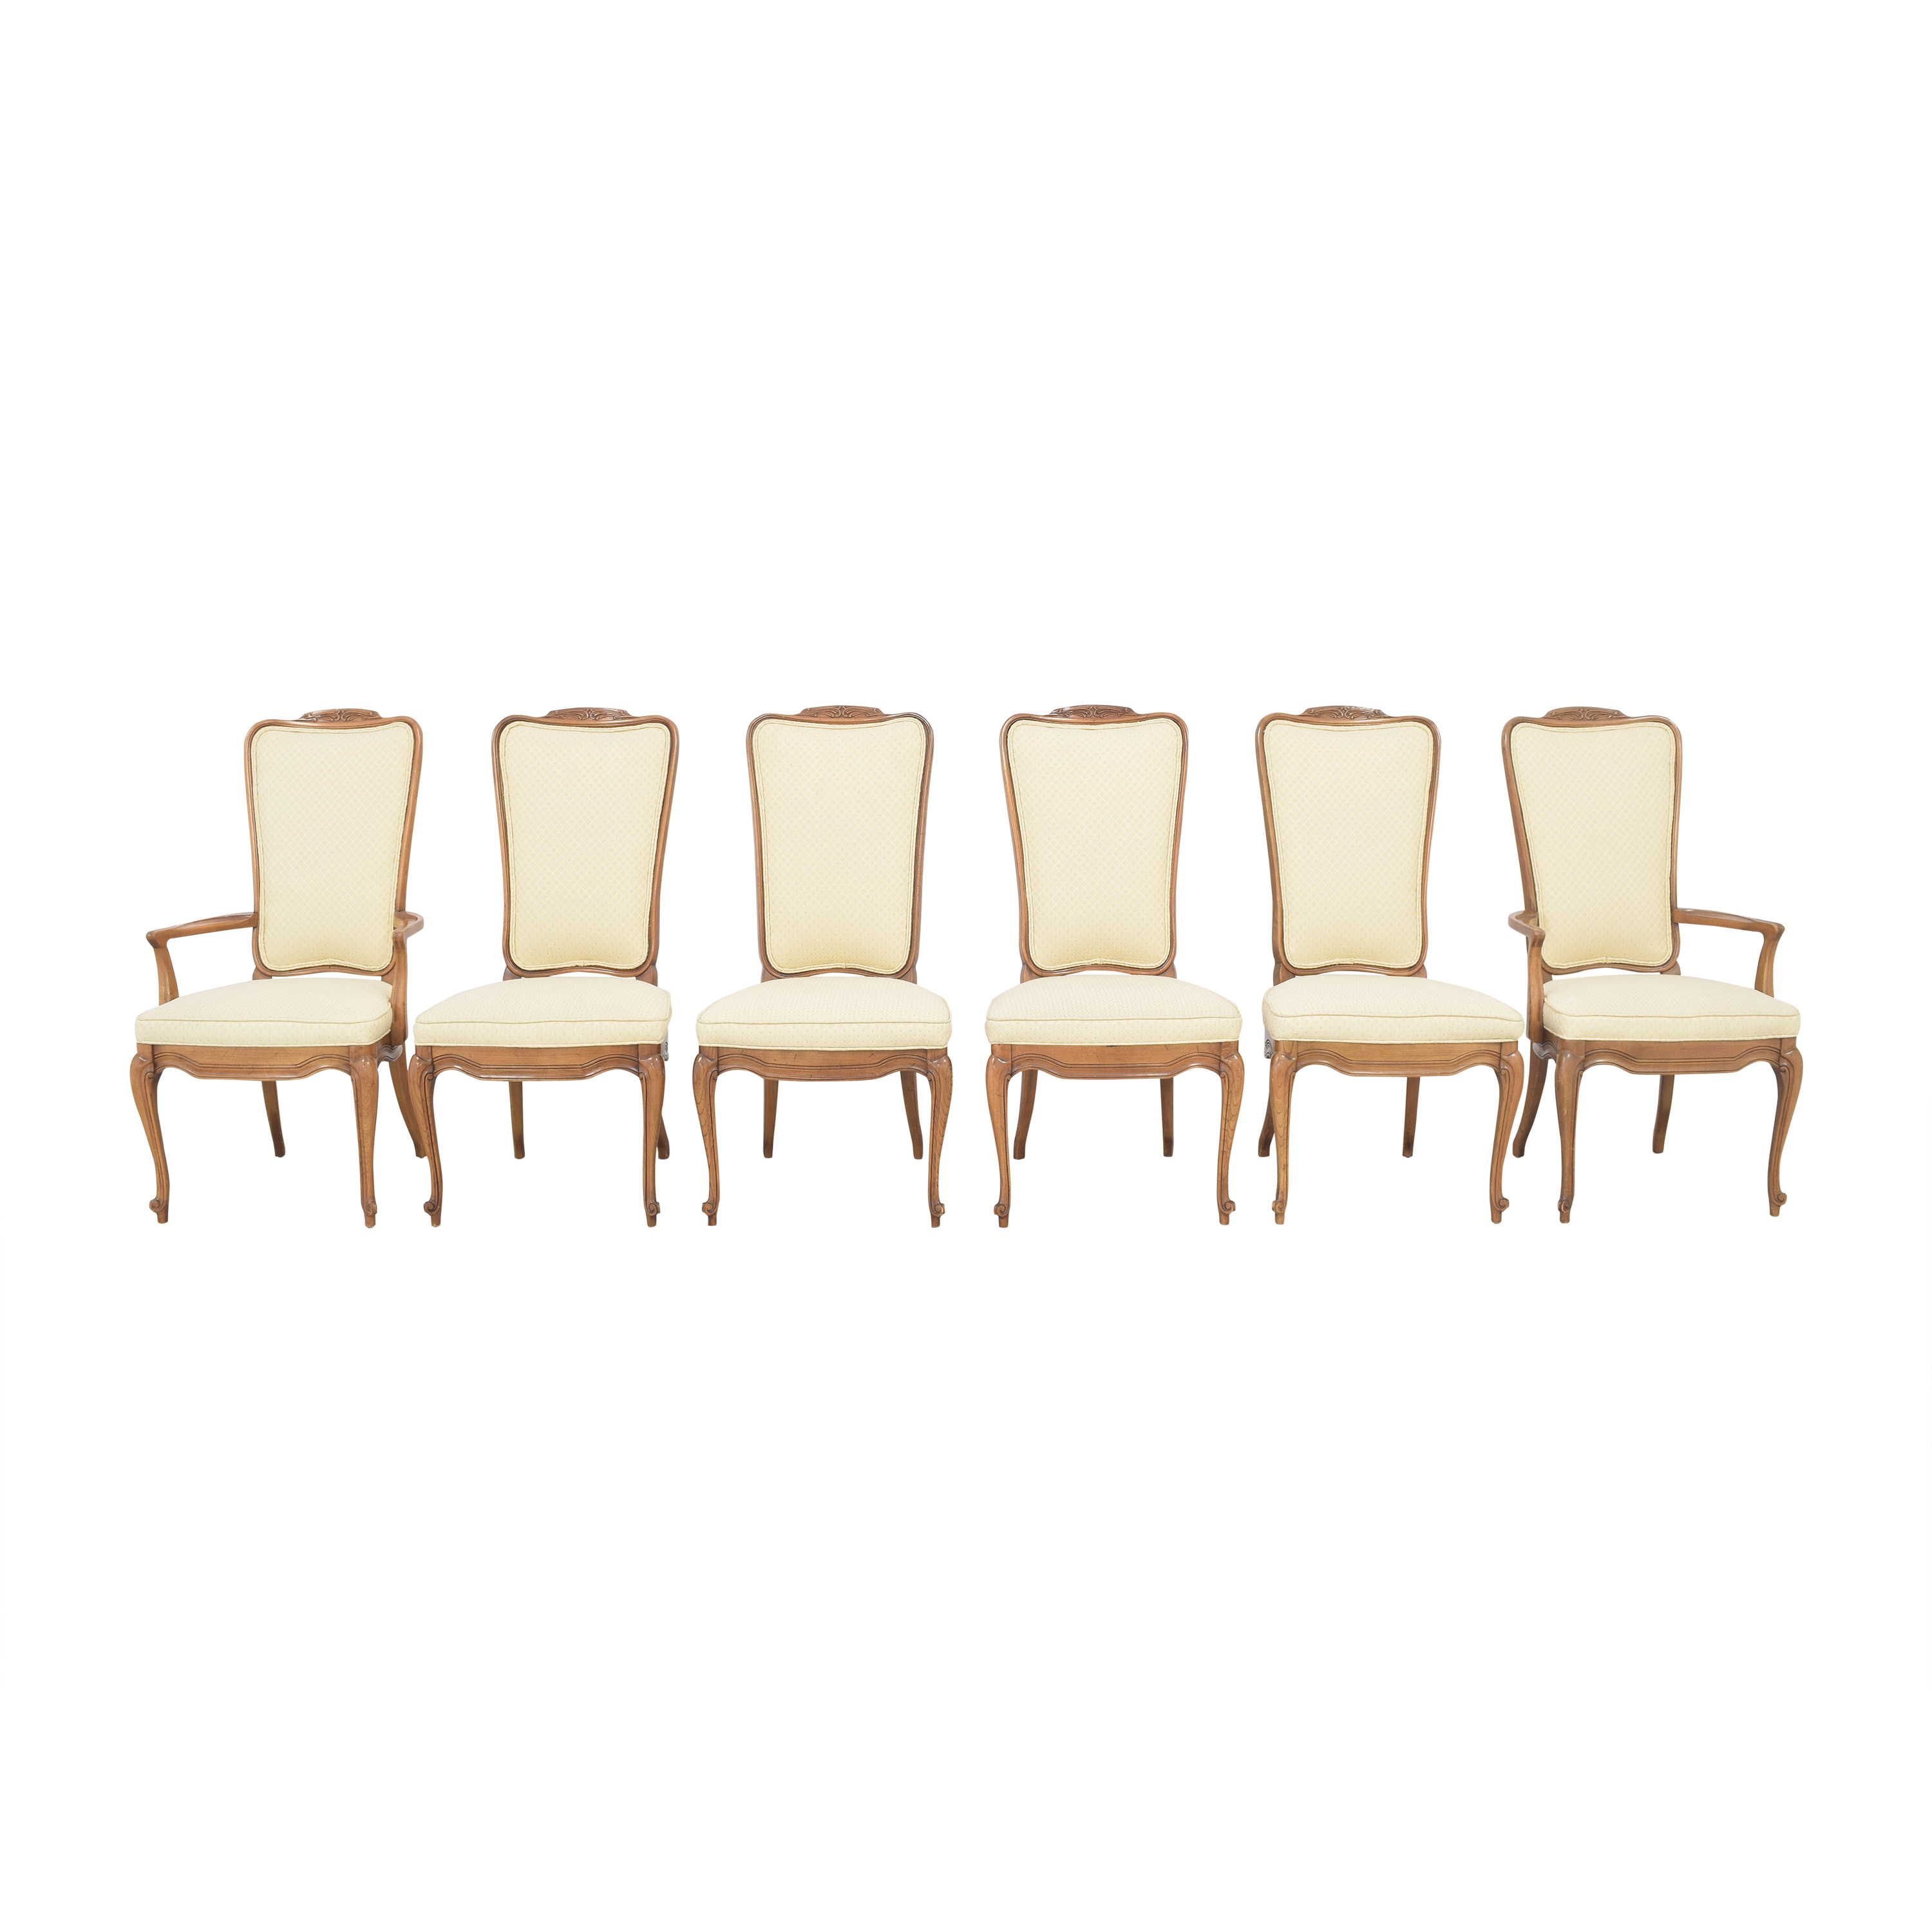 White Fine Furniture White Fine Furniture Dining Chairs coupon